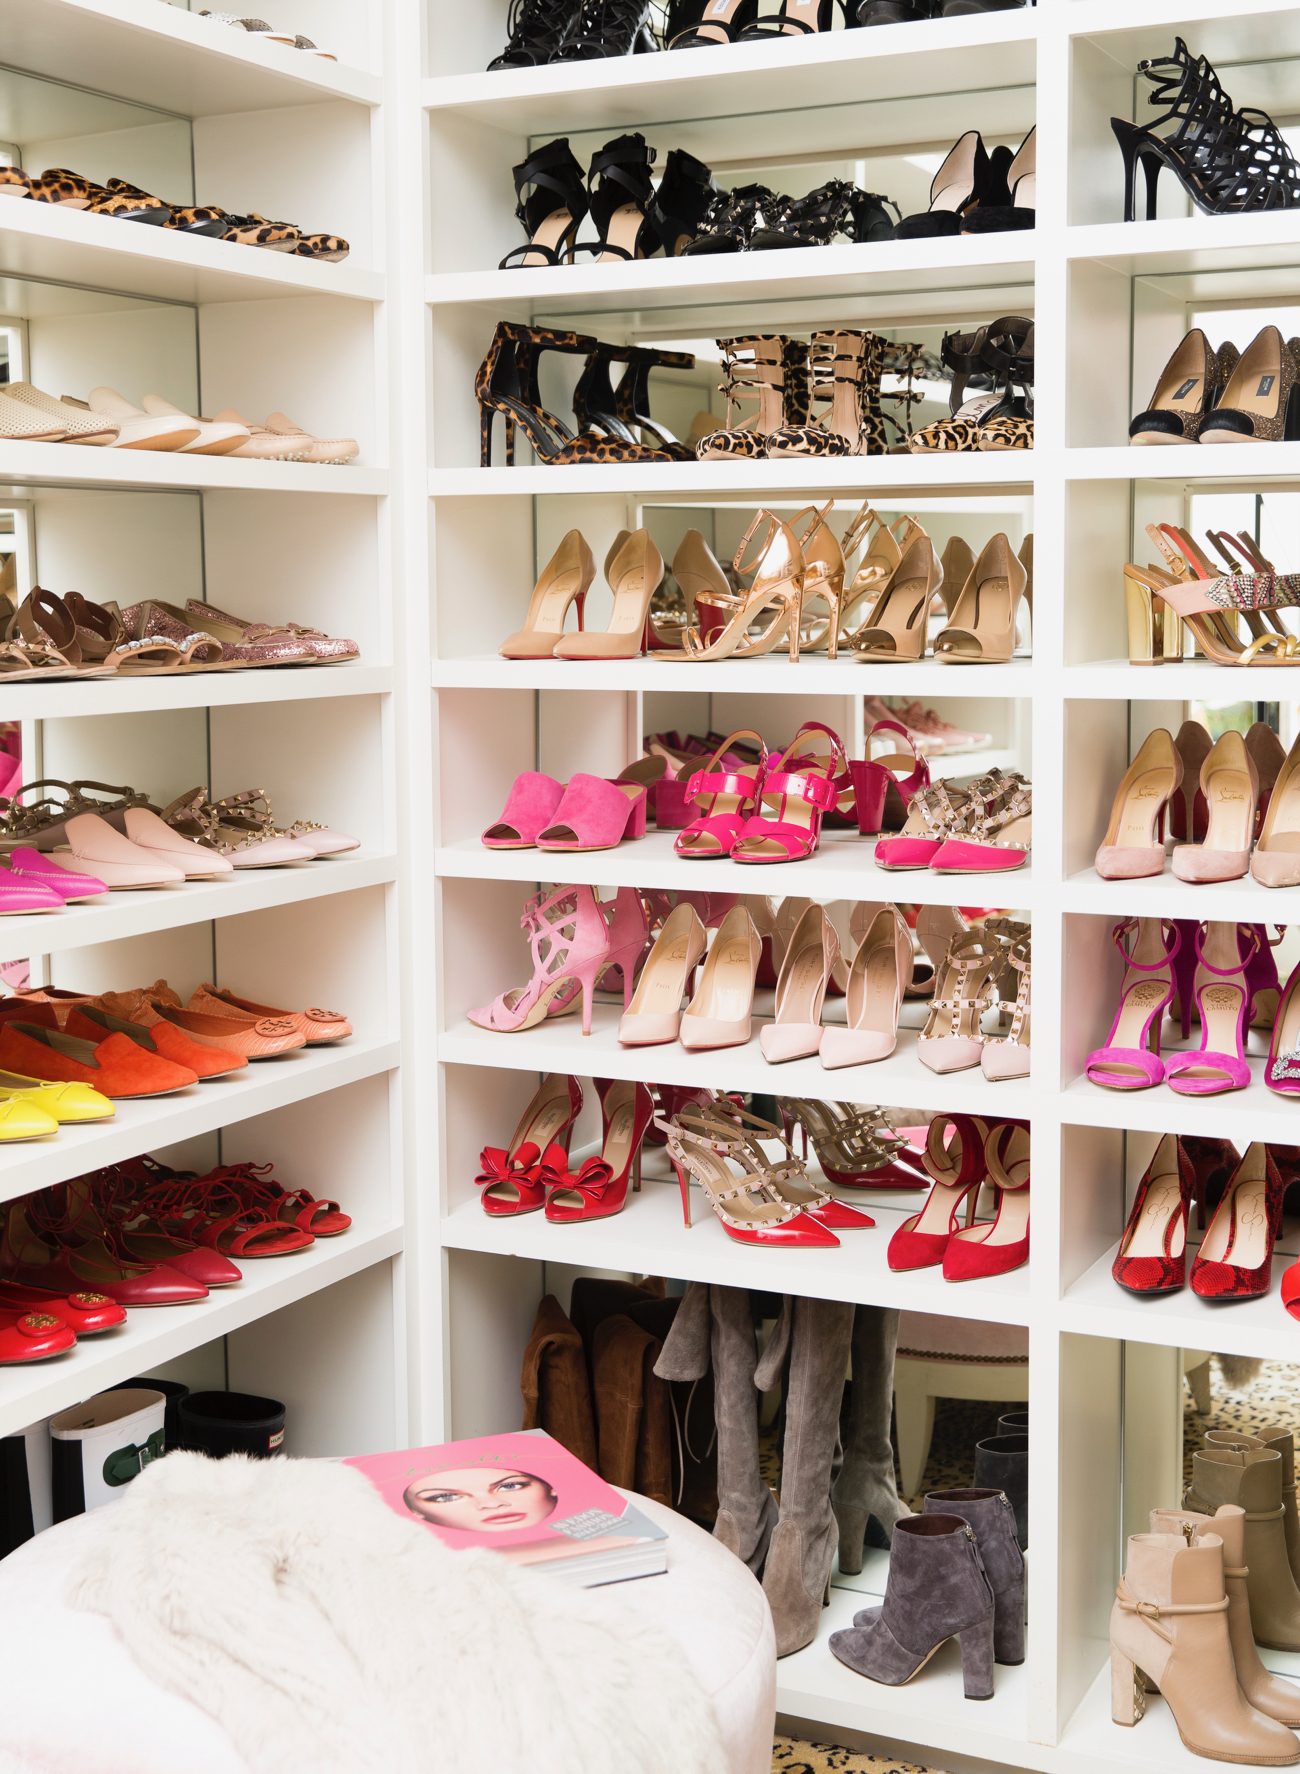 dream-walk-in-designer-closet - 39